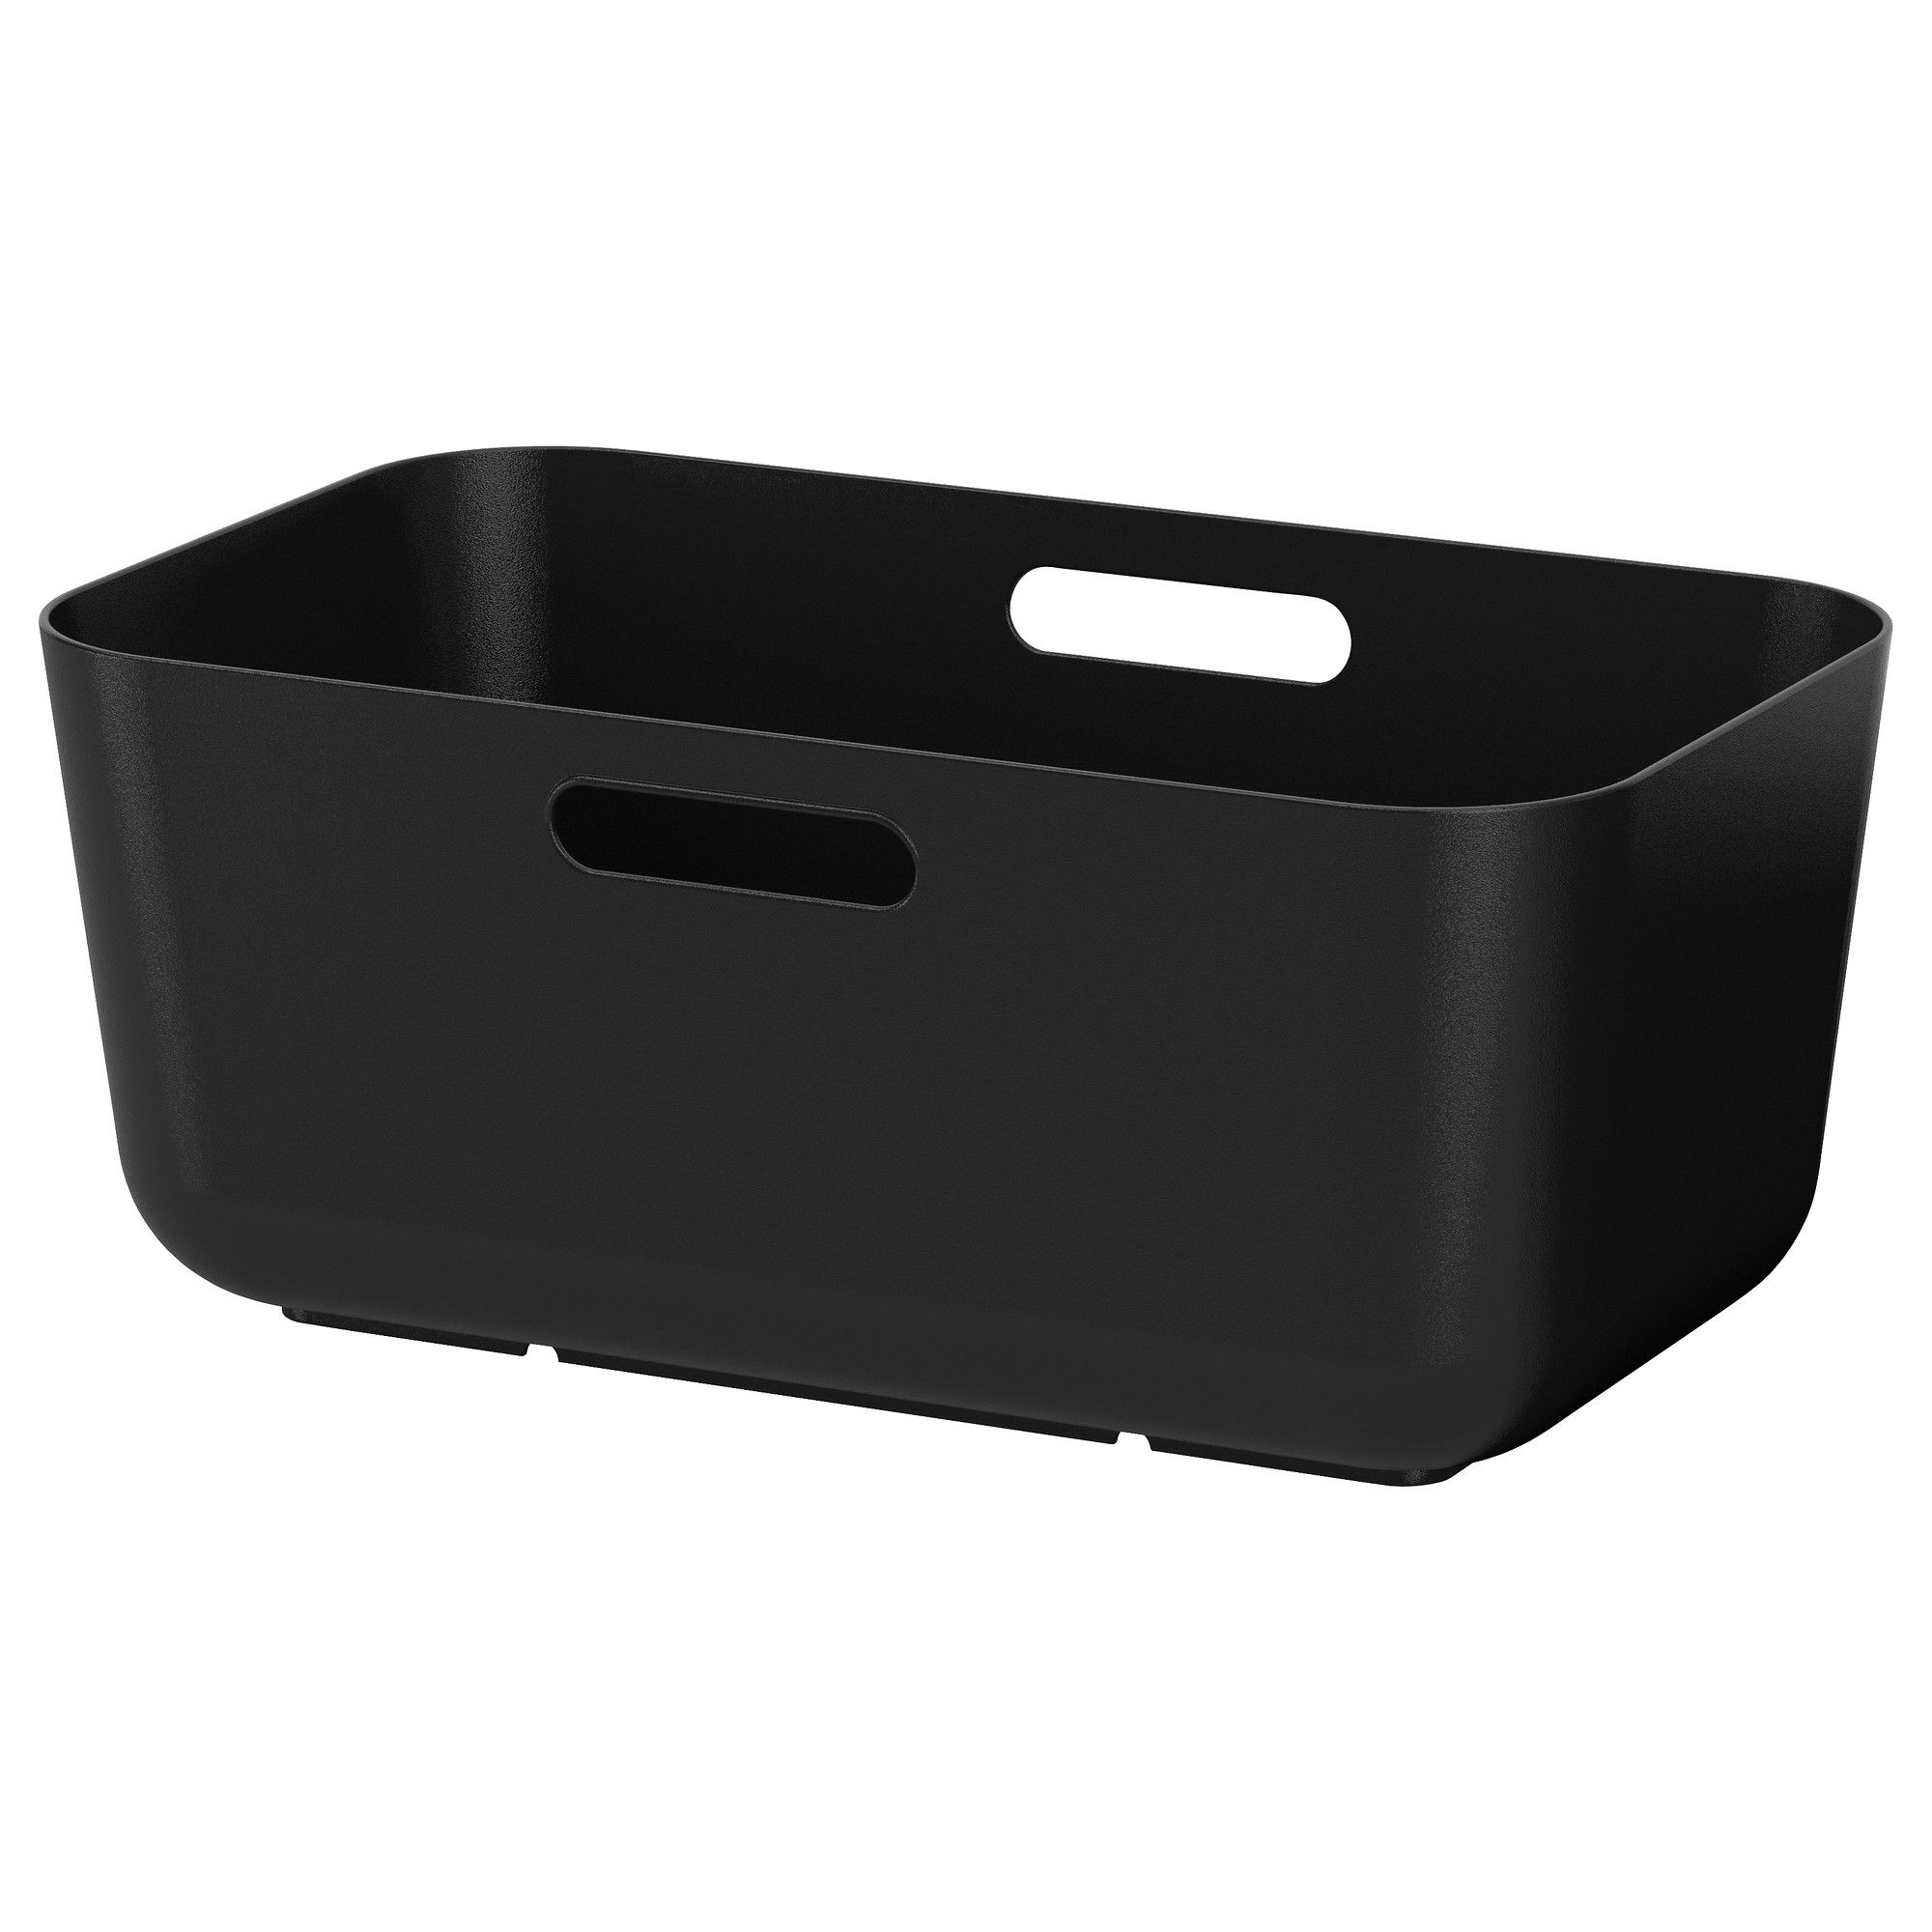 boholmen bassine vaisselle ikea 6 euros caisse rangement jouets plastique pratique. Black Bedroom Furniture Sets. Home Design Ideas